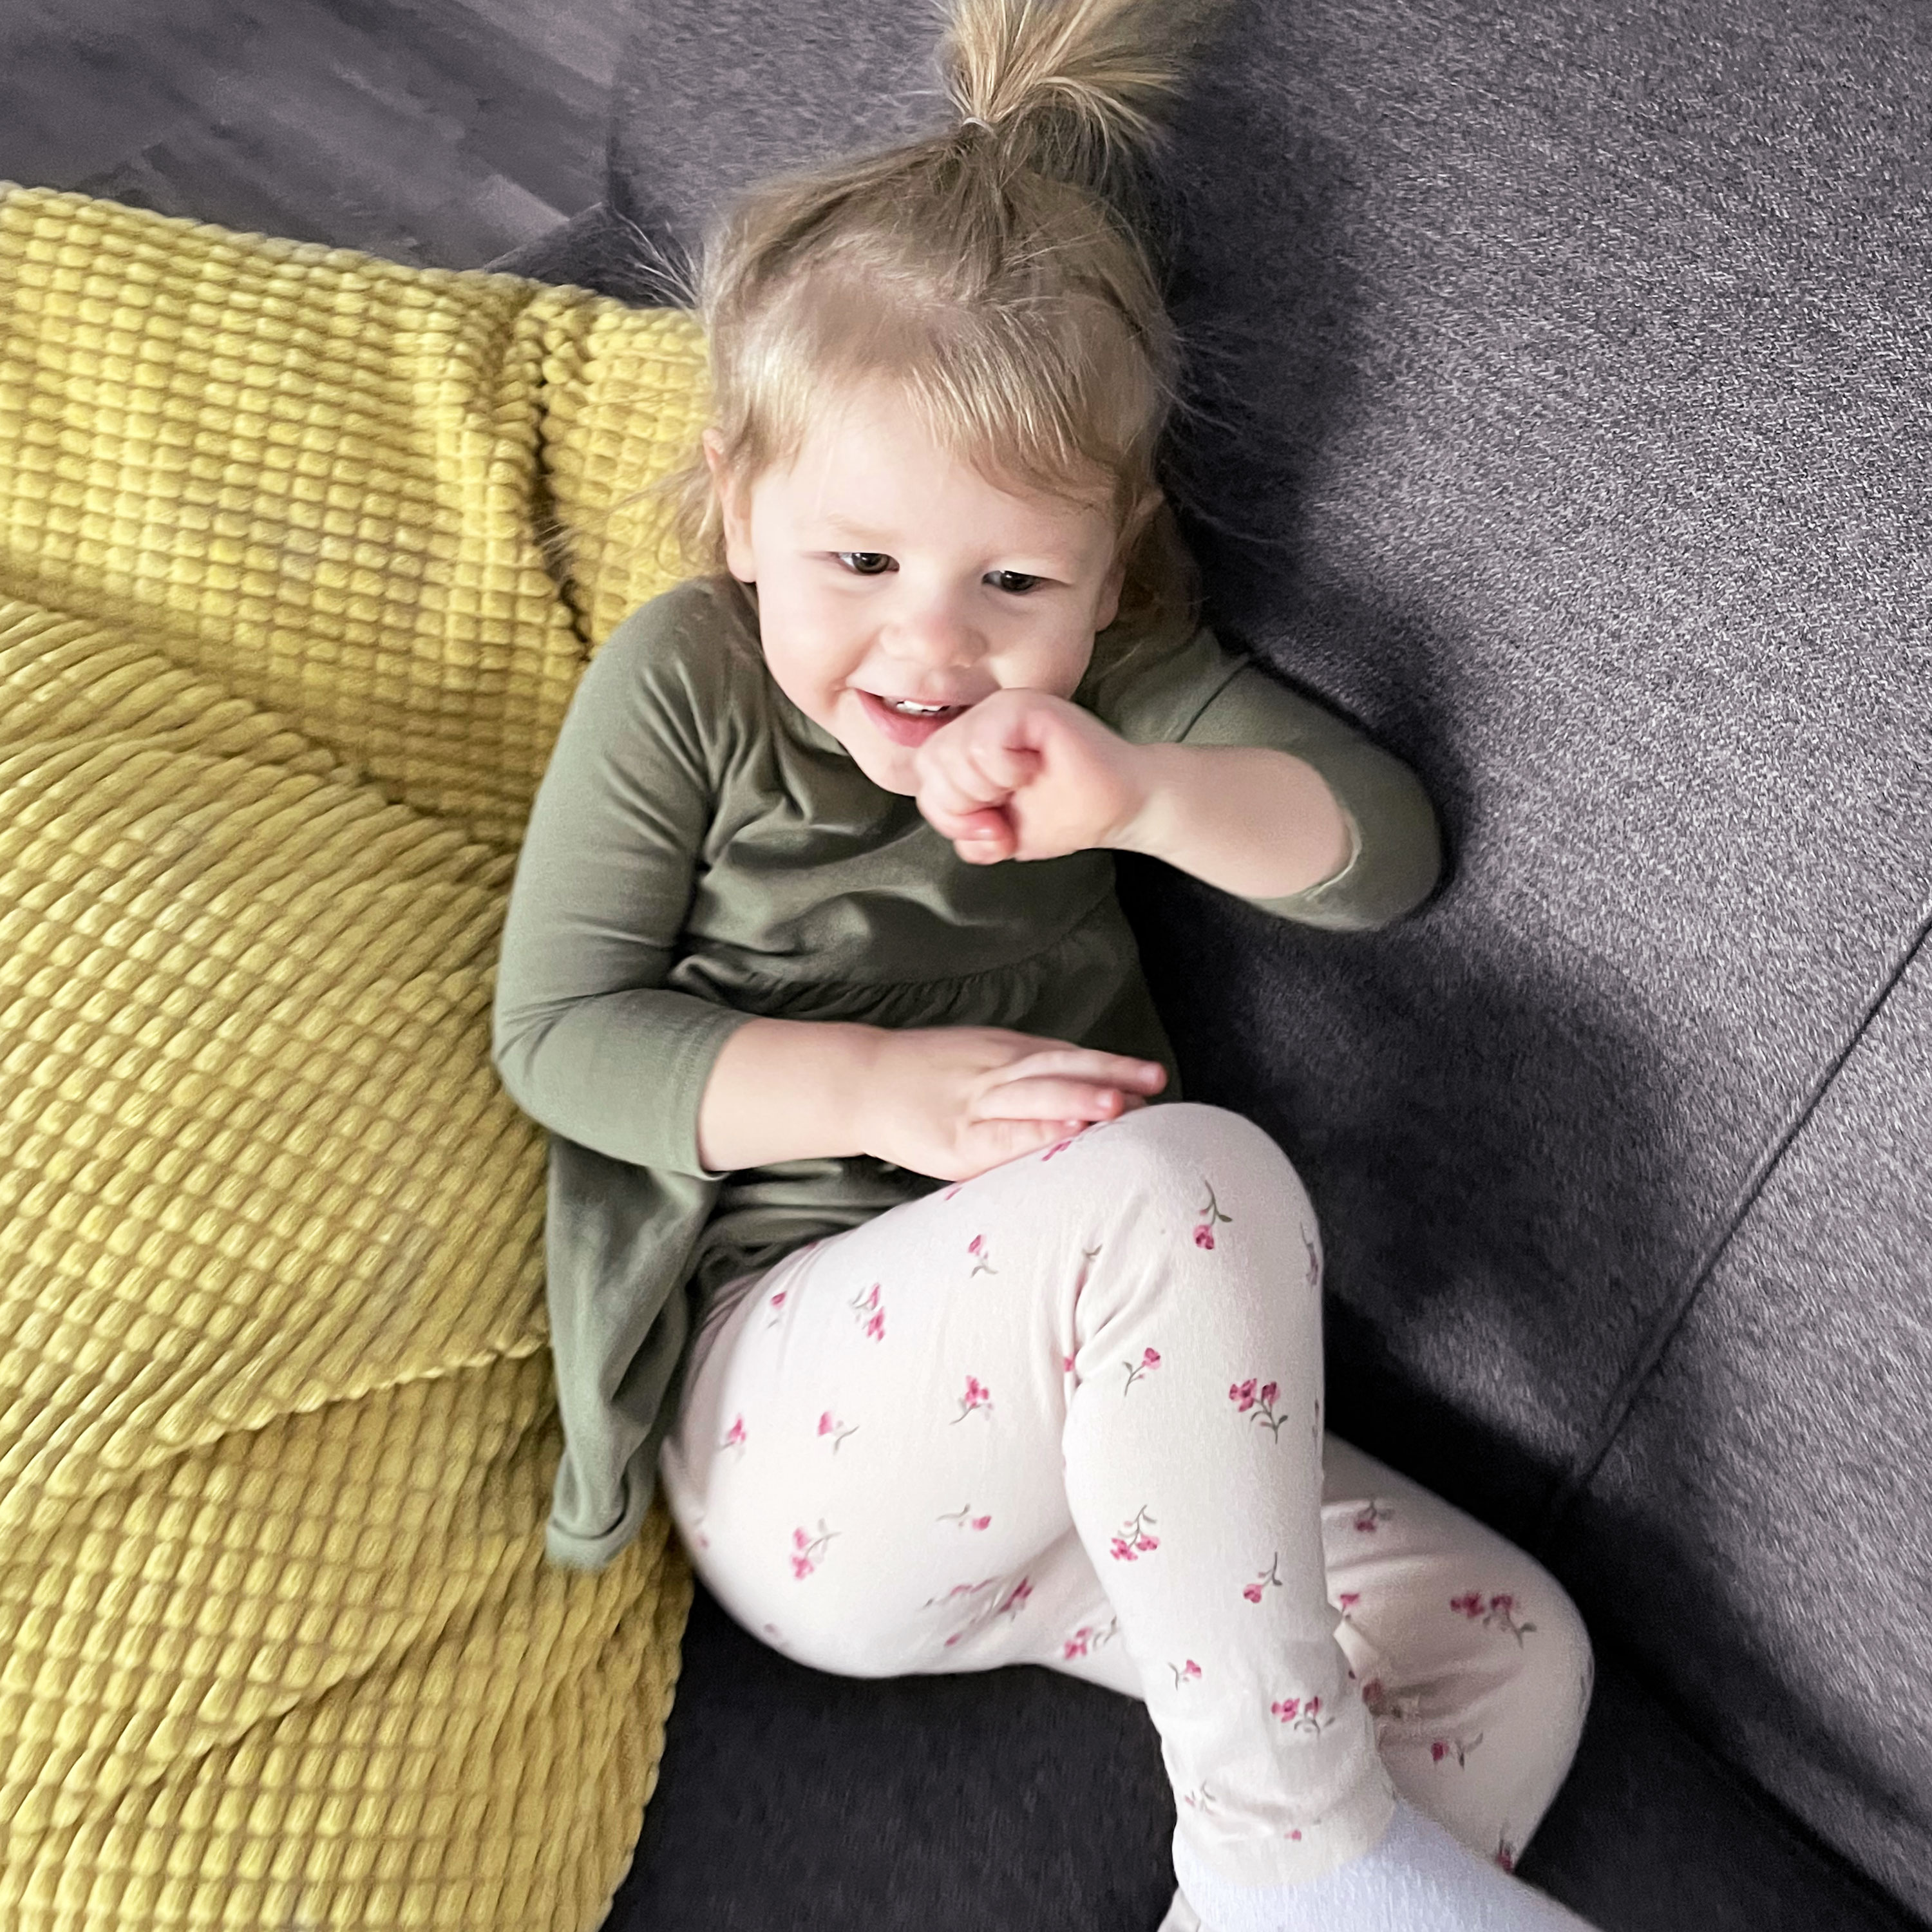 Smiling girl lying on a grey couch with a yellow pillow.